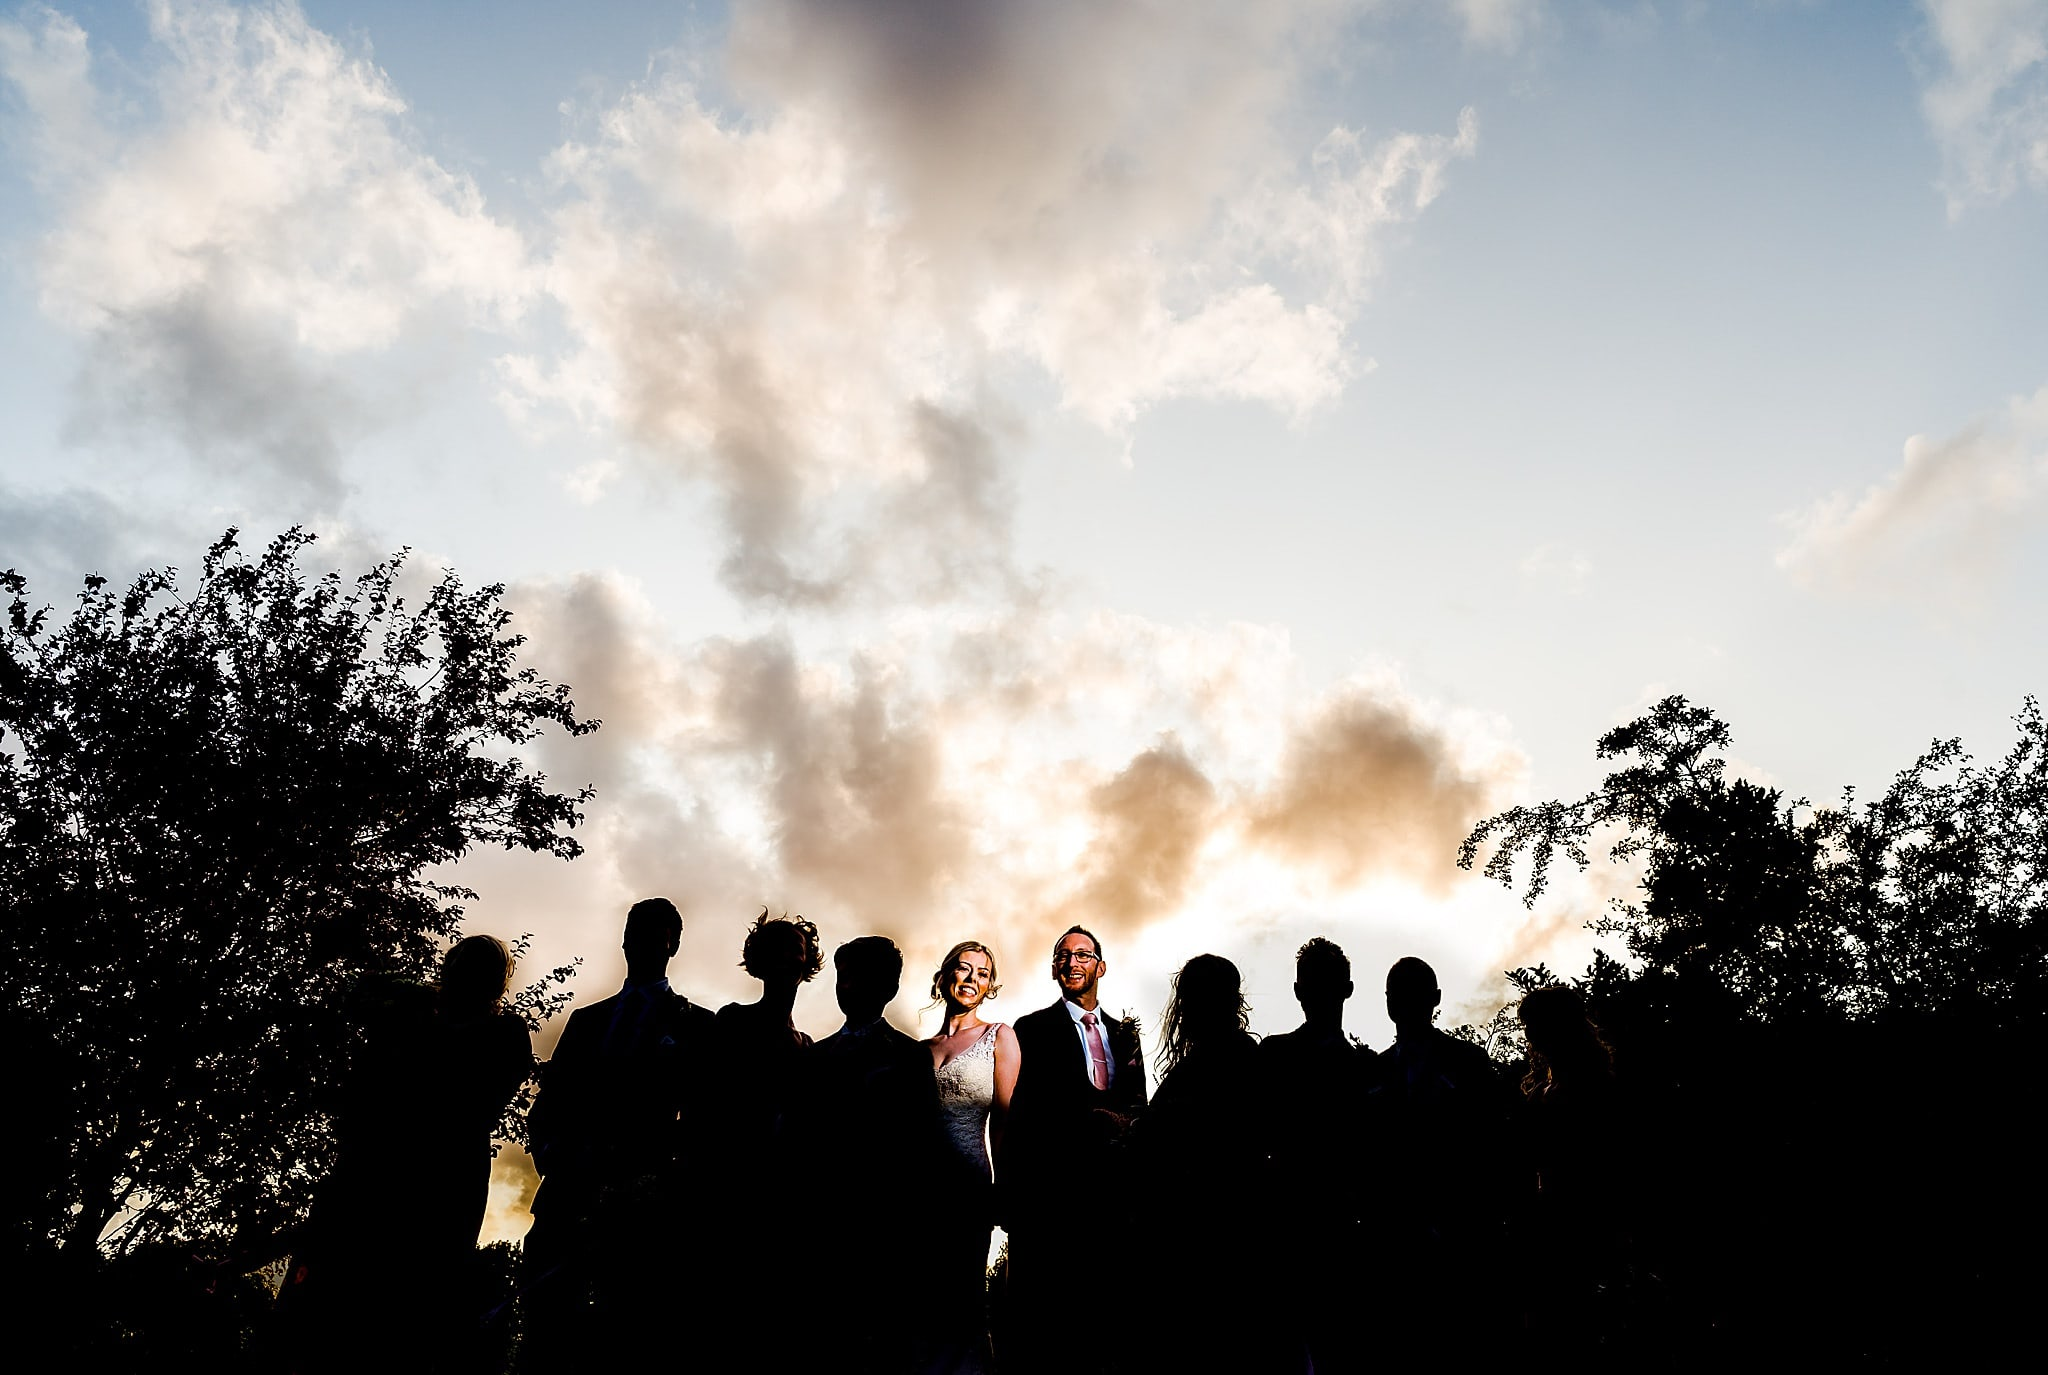 Silhouette shot of wedding party with bride and groom lit up by flash in front of moody sky